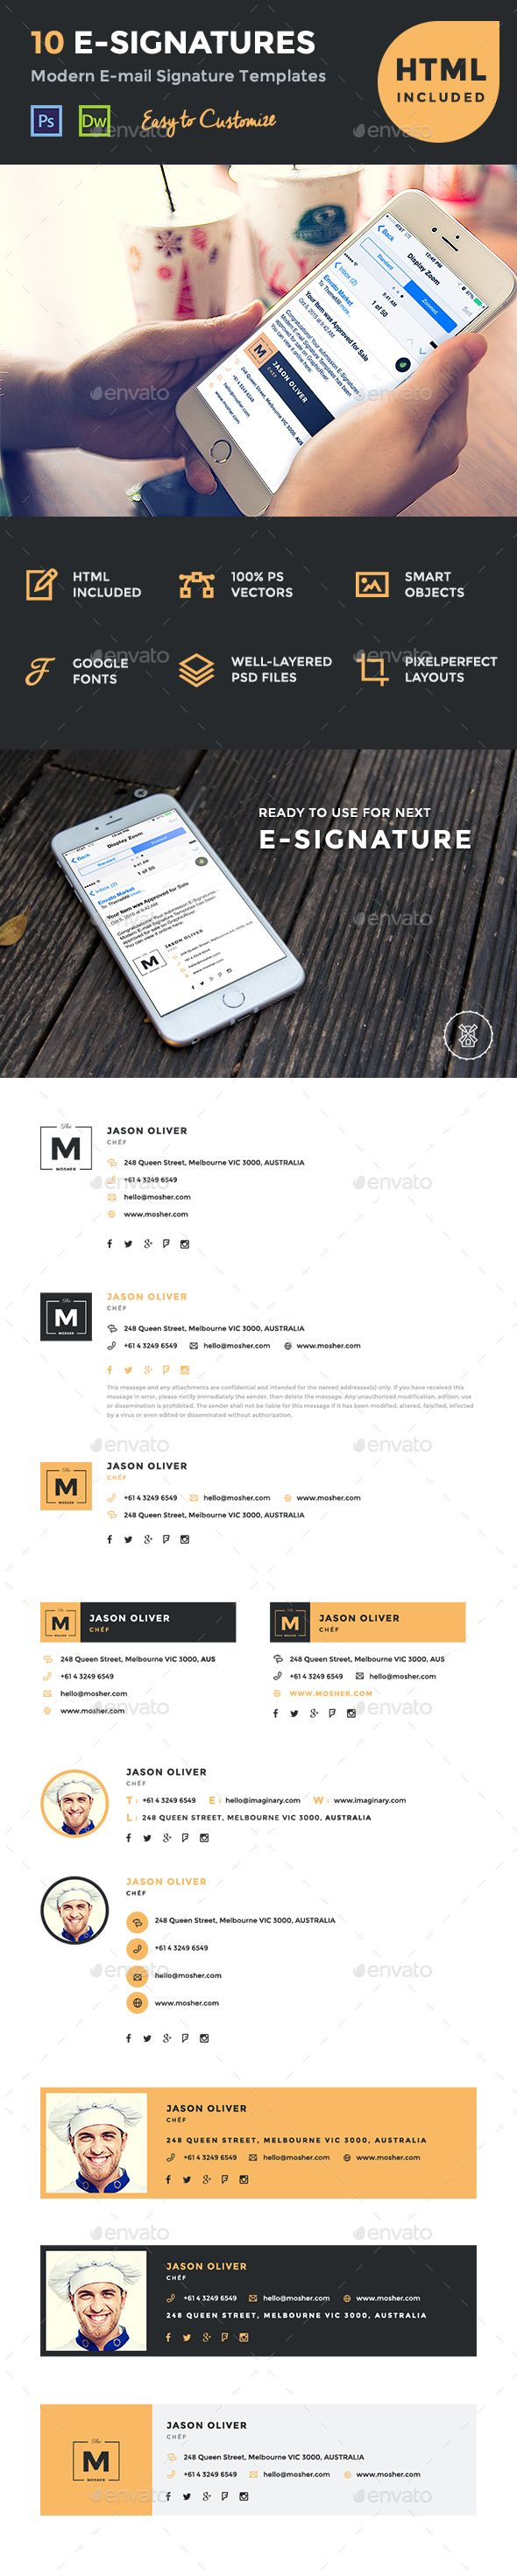 10 E-Signatures - Modern Email Signature Templates - Miscellaneous Web Elements